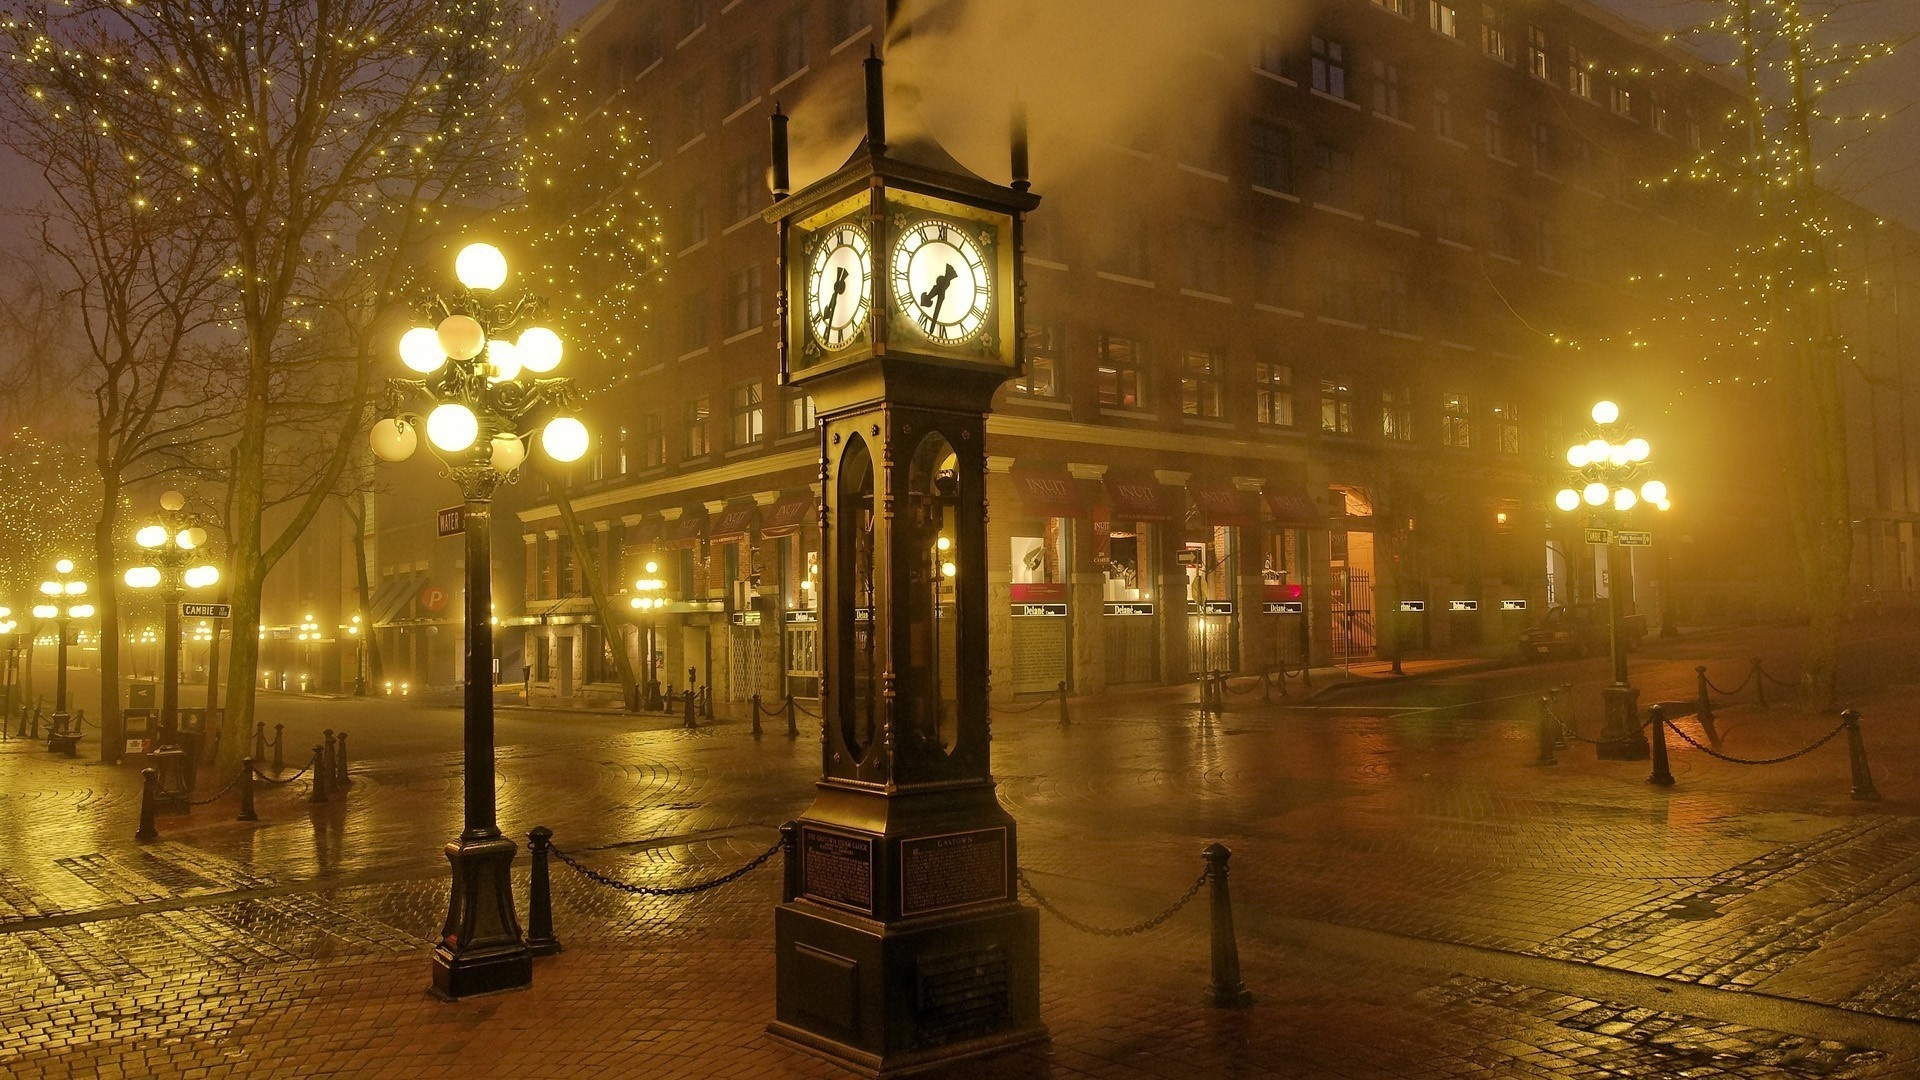 show me a picture of a clock